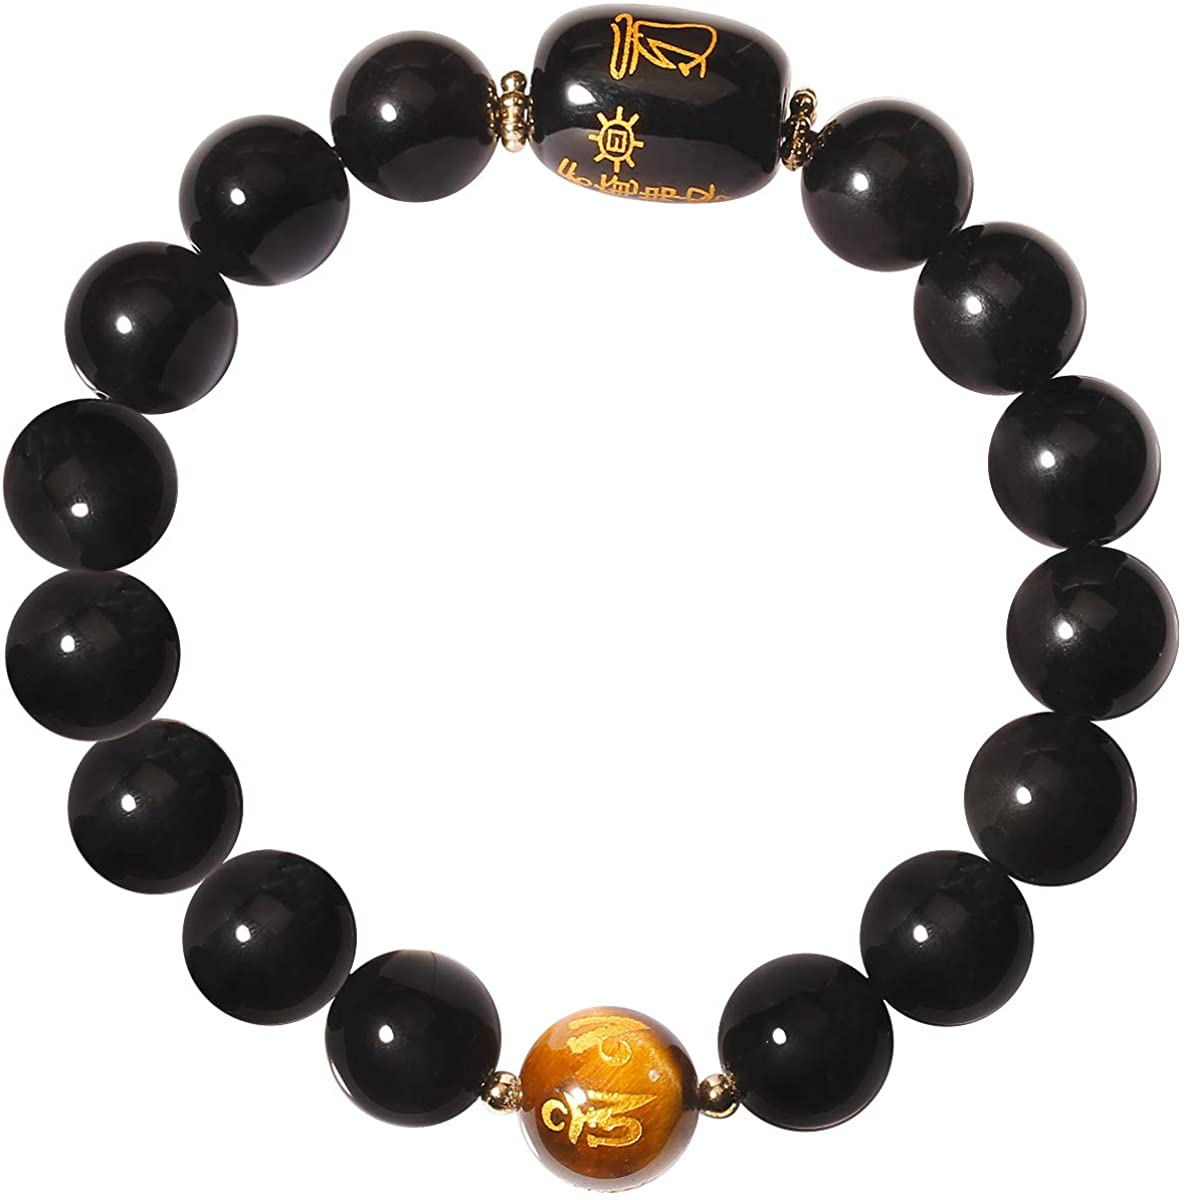 Jewever Feng Shui Black Obsidian Bracelet with Yellow Tiger Eye 12mm Bead Healing Crystal Wealth and Good Luck Bangle Unisex 7 Inch